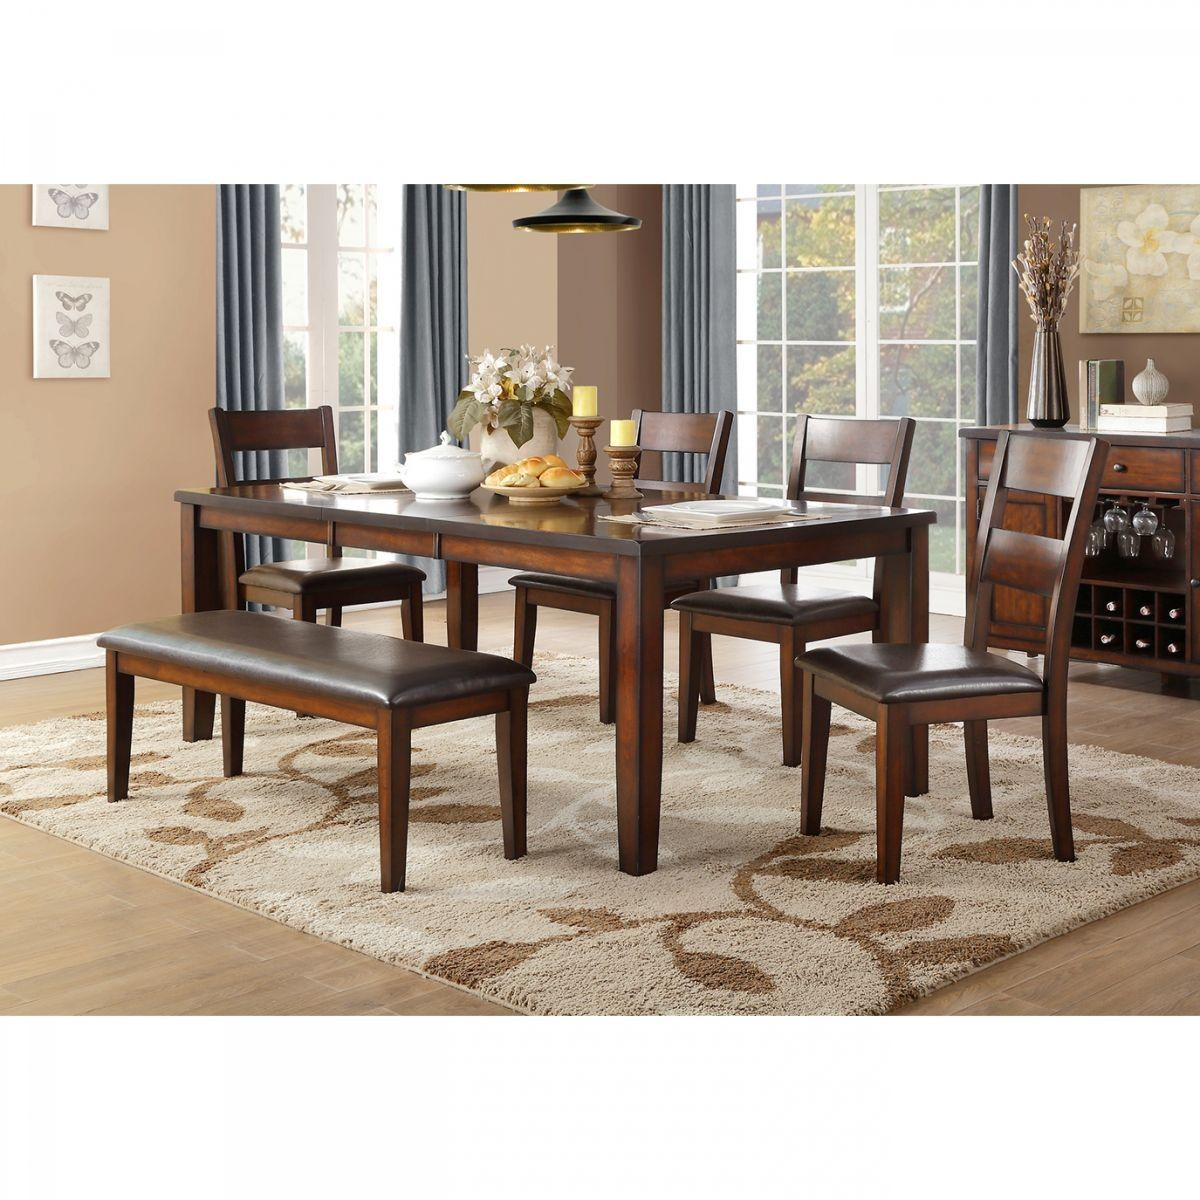 Badcock More Mantello 6 Pc Cherry Dining Room With Bench Drop Leaf Dining Table Dining Table Sizes Dining Room Sets [ 1200 x 1200 Pixel ]